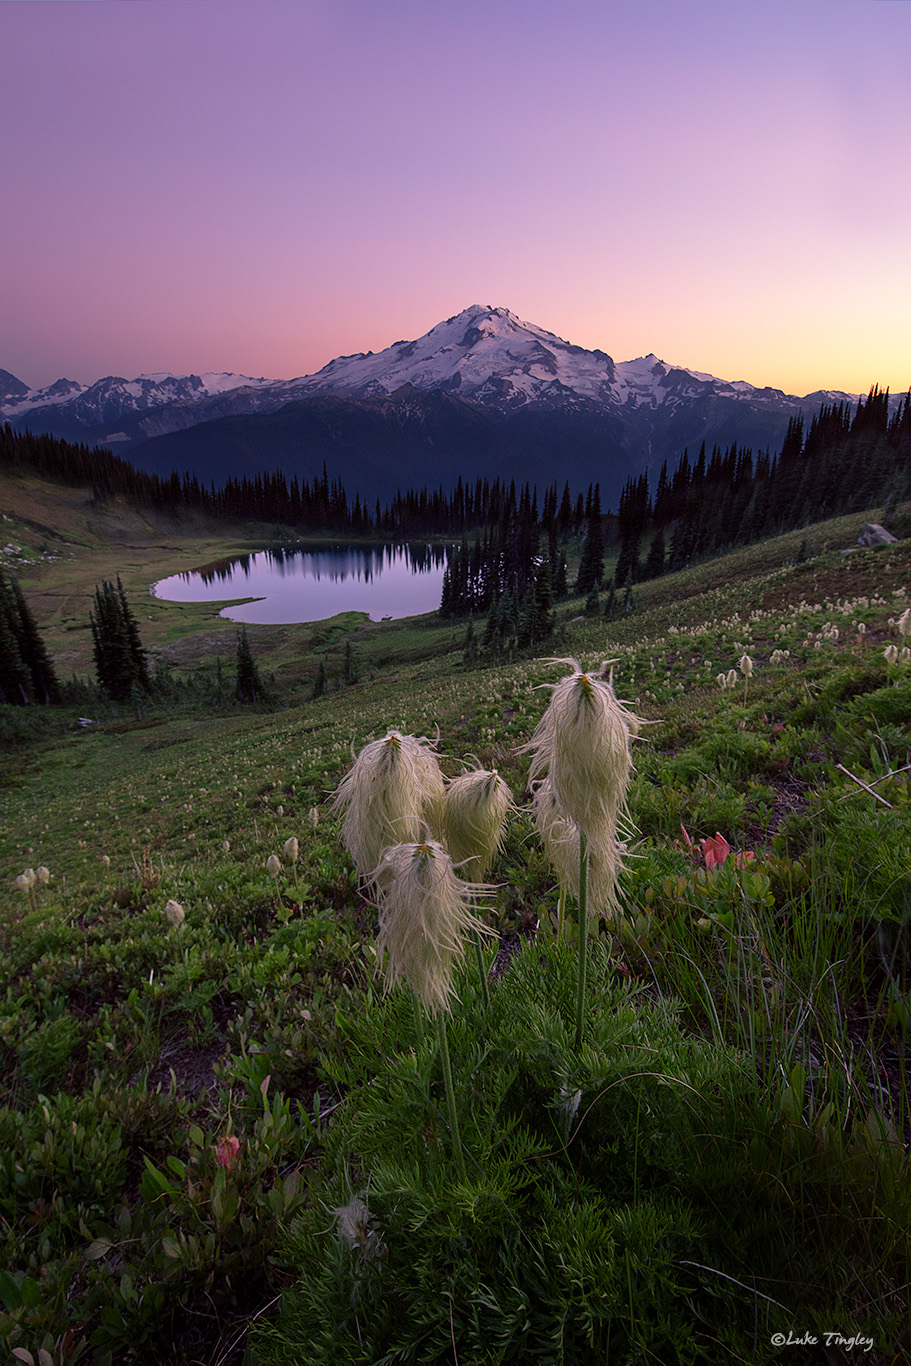 2018, Backcountry, Glacier Peak, Glacier Peak Wilderness, Image Lake, Summer, Western Pasque Flower, Wildflowers, Washington, photo